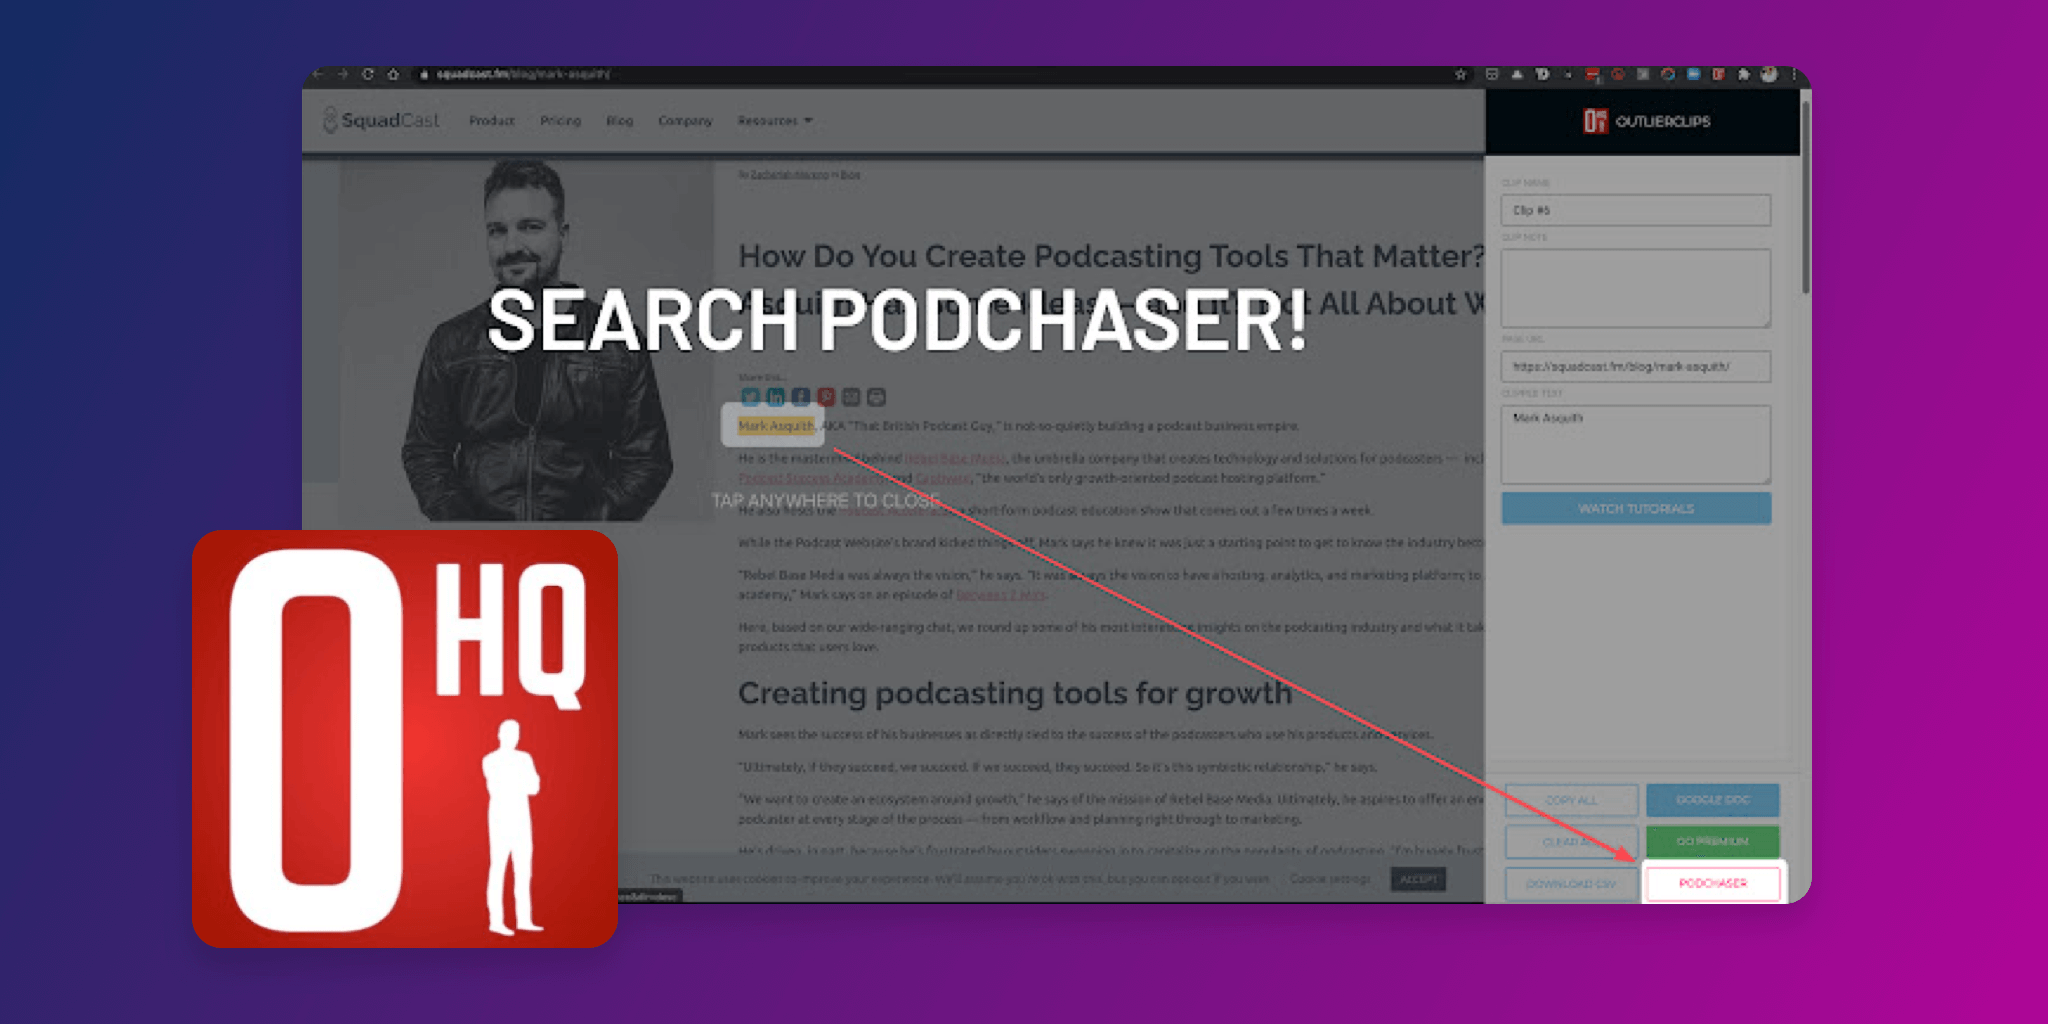 New OutlierClips Chrome Extension Lets You Easily Search Podchaser